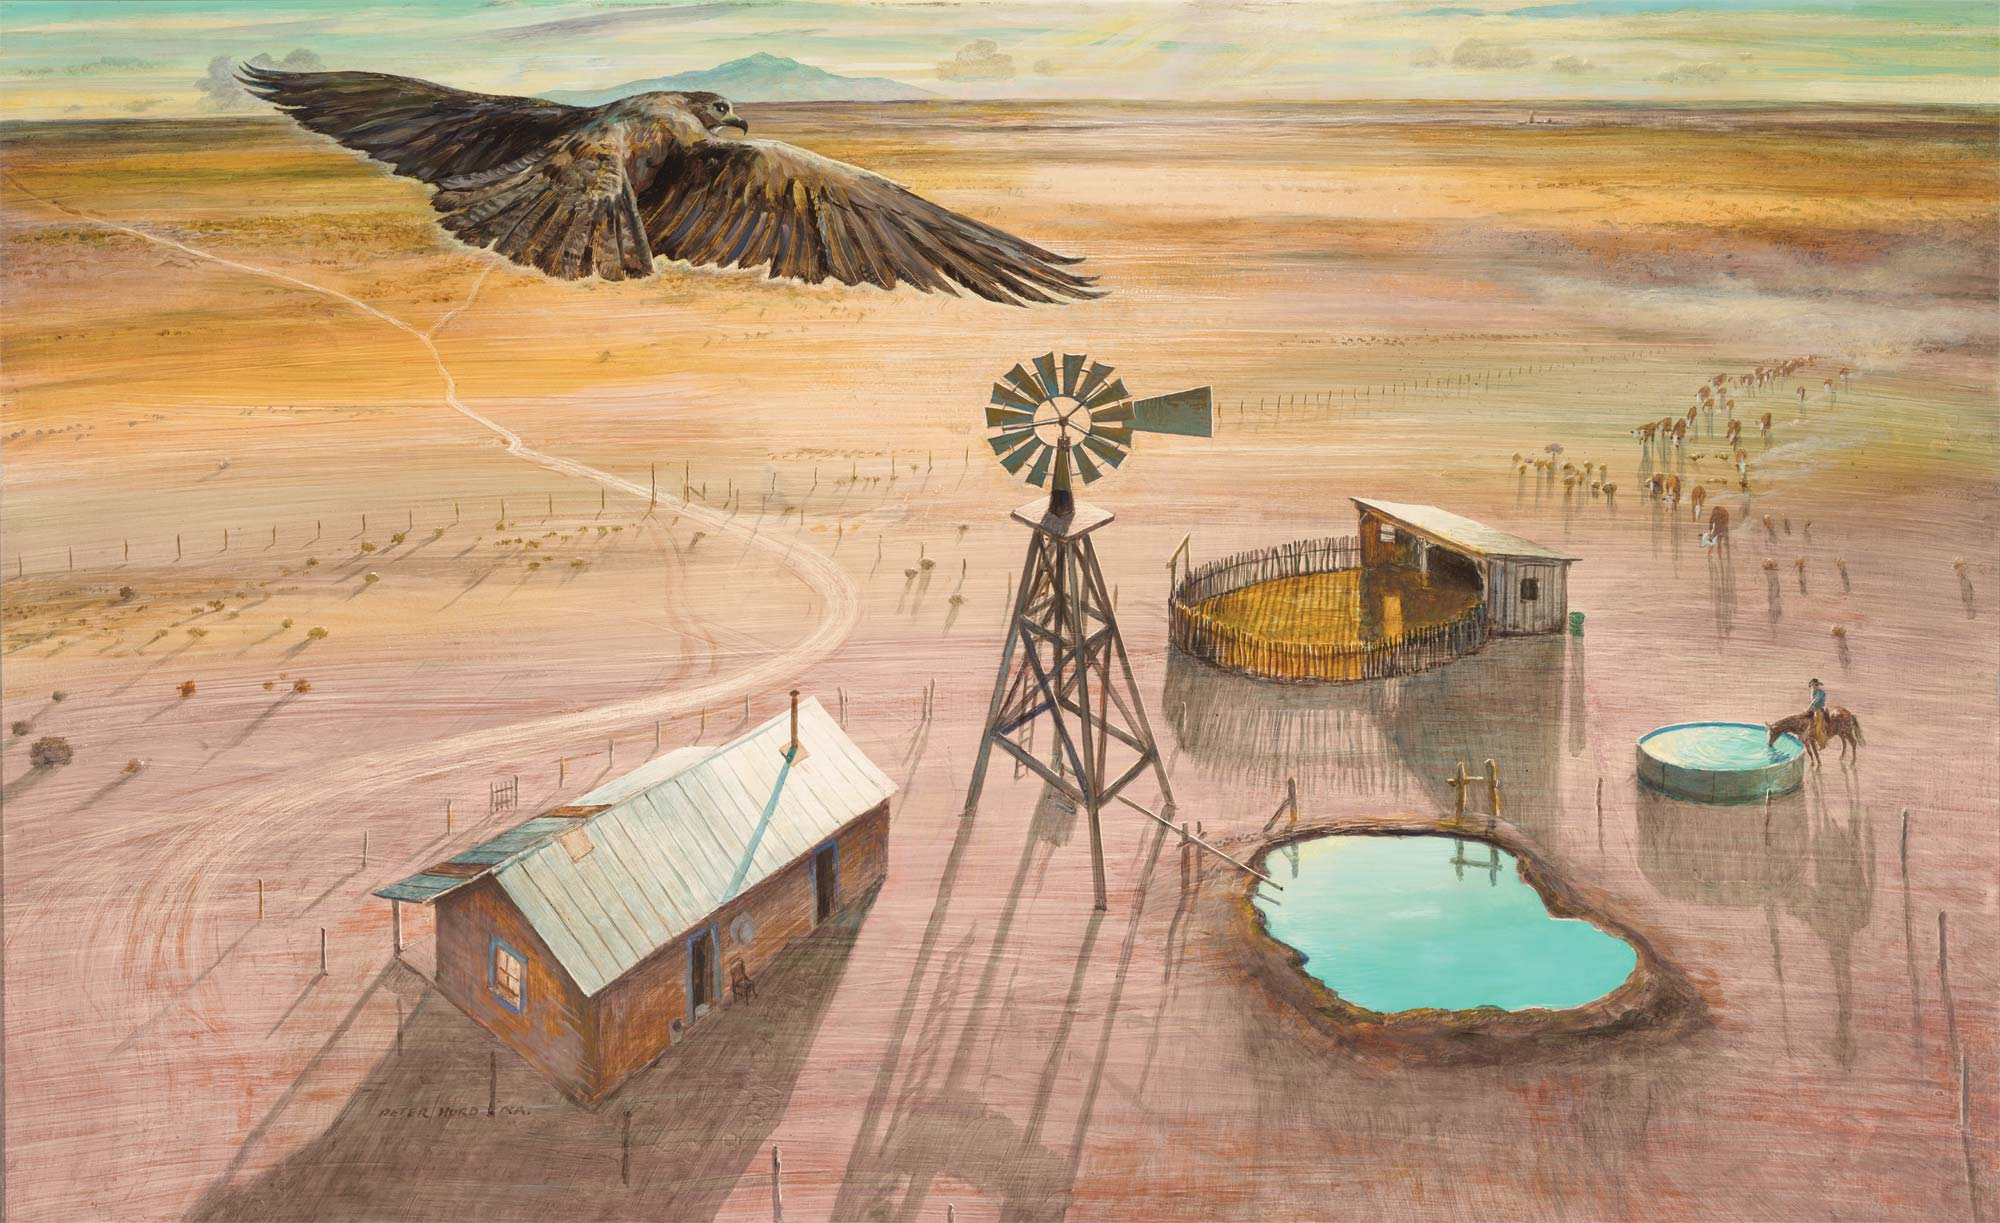 Peter Hurd, A Ranch on the Plains, 1954. Tempera on hardboard, 29 3/4 x 47 1/8 in. (75.6 x 119.7 cm). FAMSF, gift of the California Brewing Company, 54.37